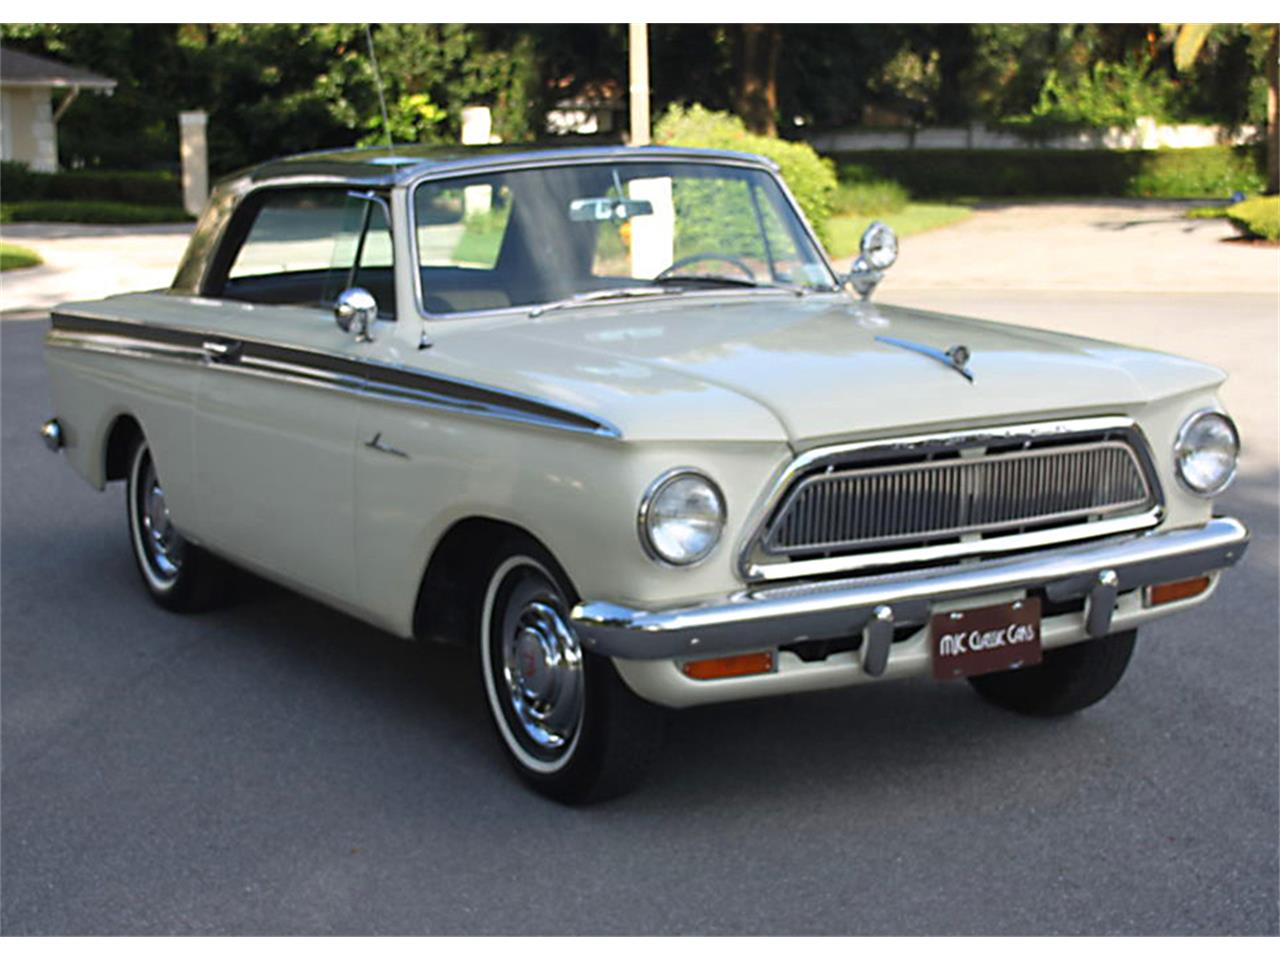 Large Picture of Classic '63 Rambler located in Florida - $19,500.00 Offered by MJC Classic Cars - PH4P